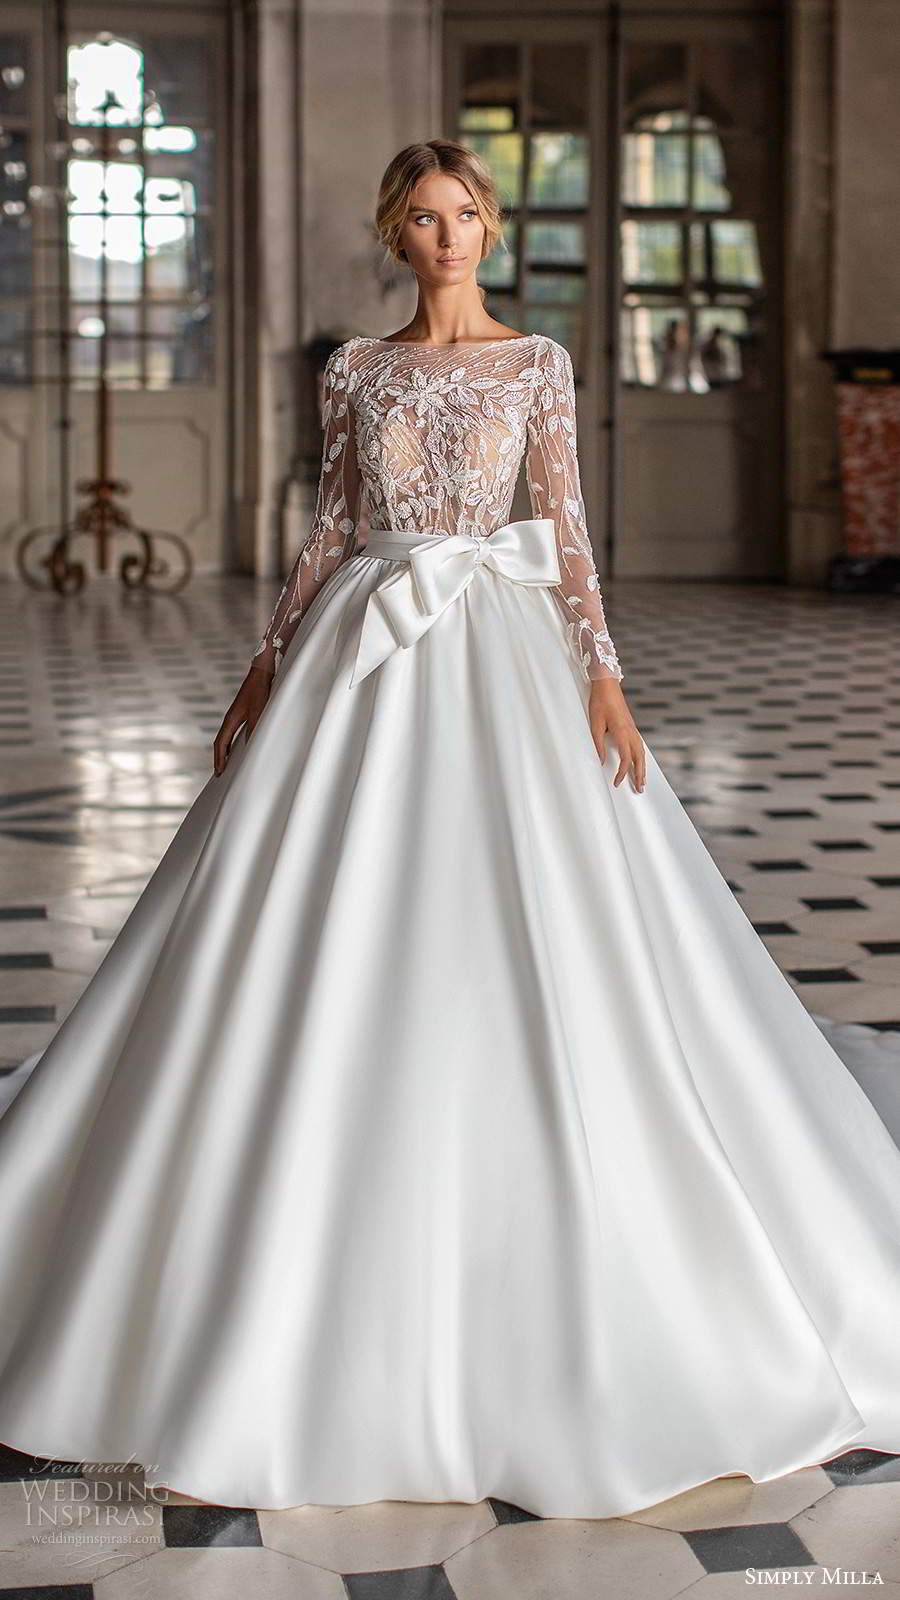 simply milla nova 2020 bridal illusion long sleeves bateau neckline embellished bodice clean skirt a line ball gown wedding dress chapel train (6) mv